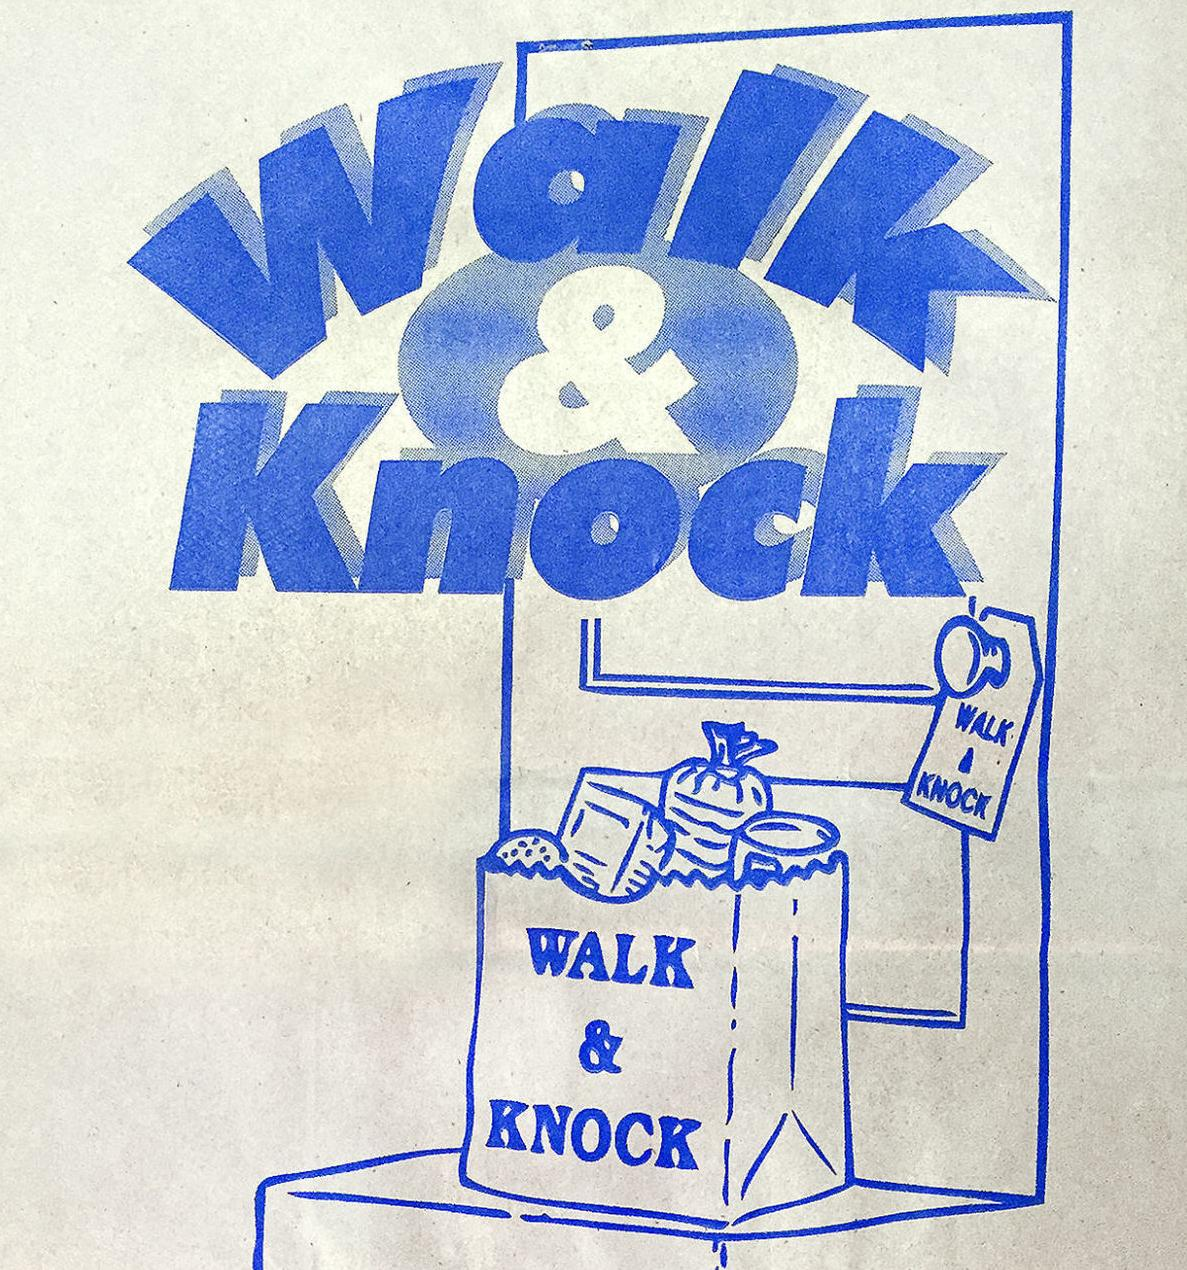 Walk and Knock